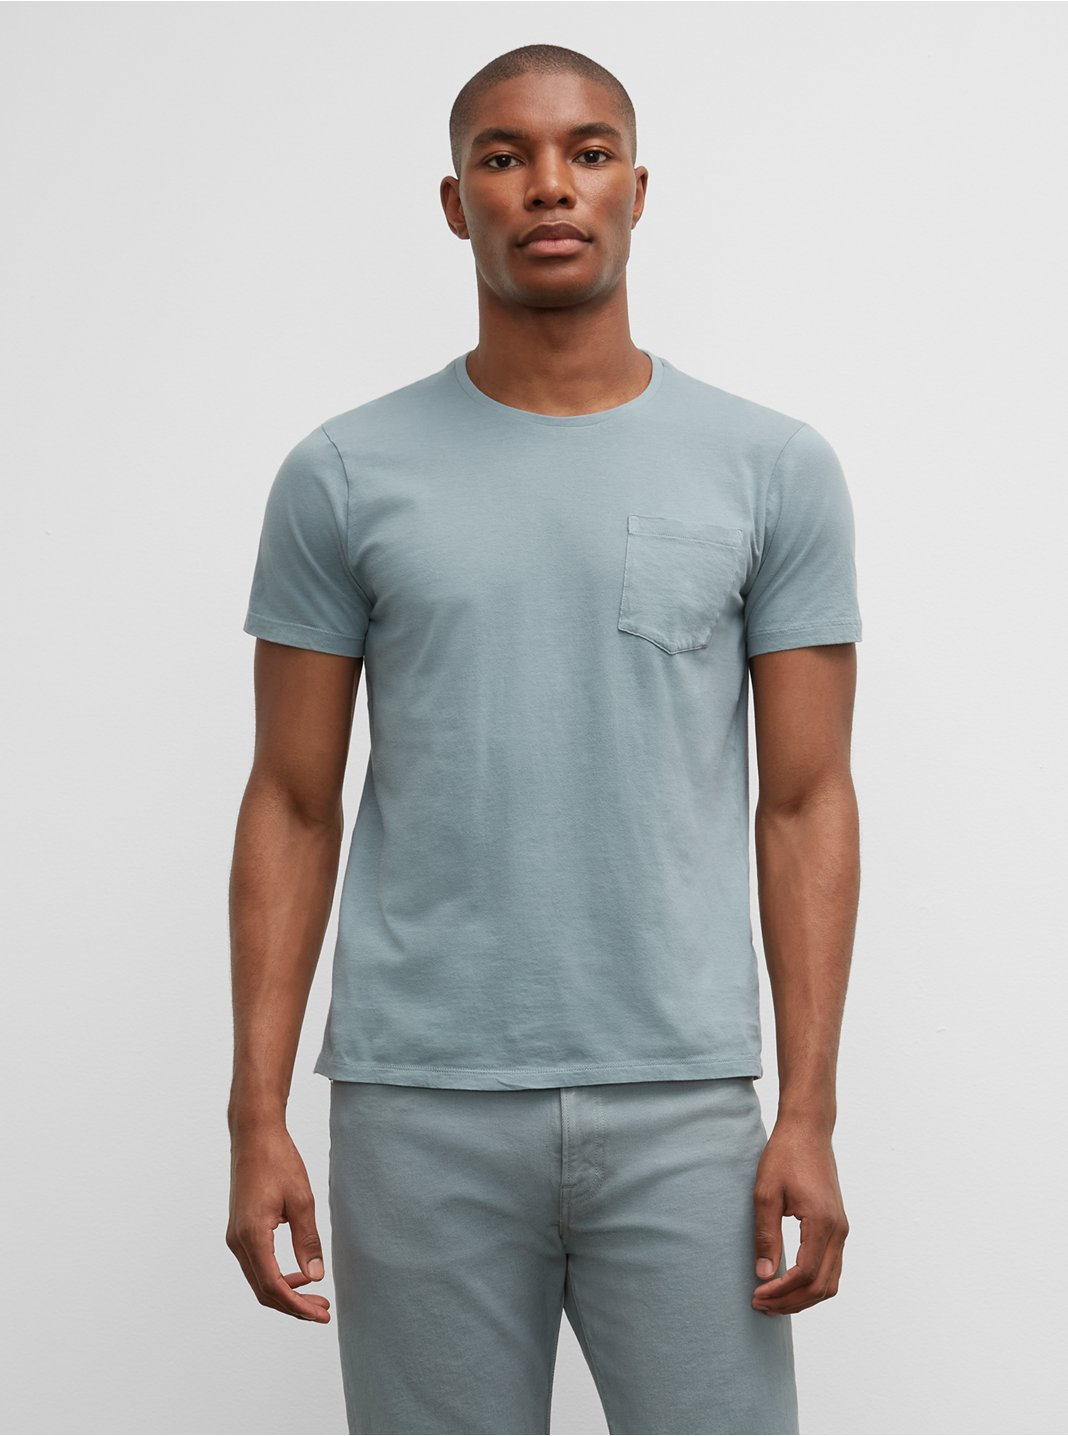 Williams Tea Dyed Short-Sleeve Crew